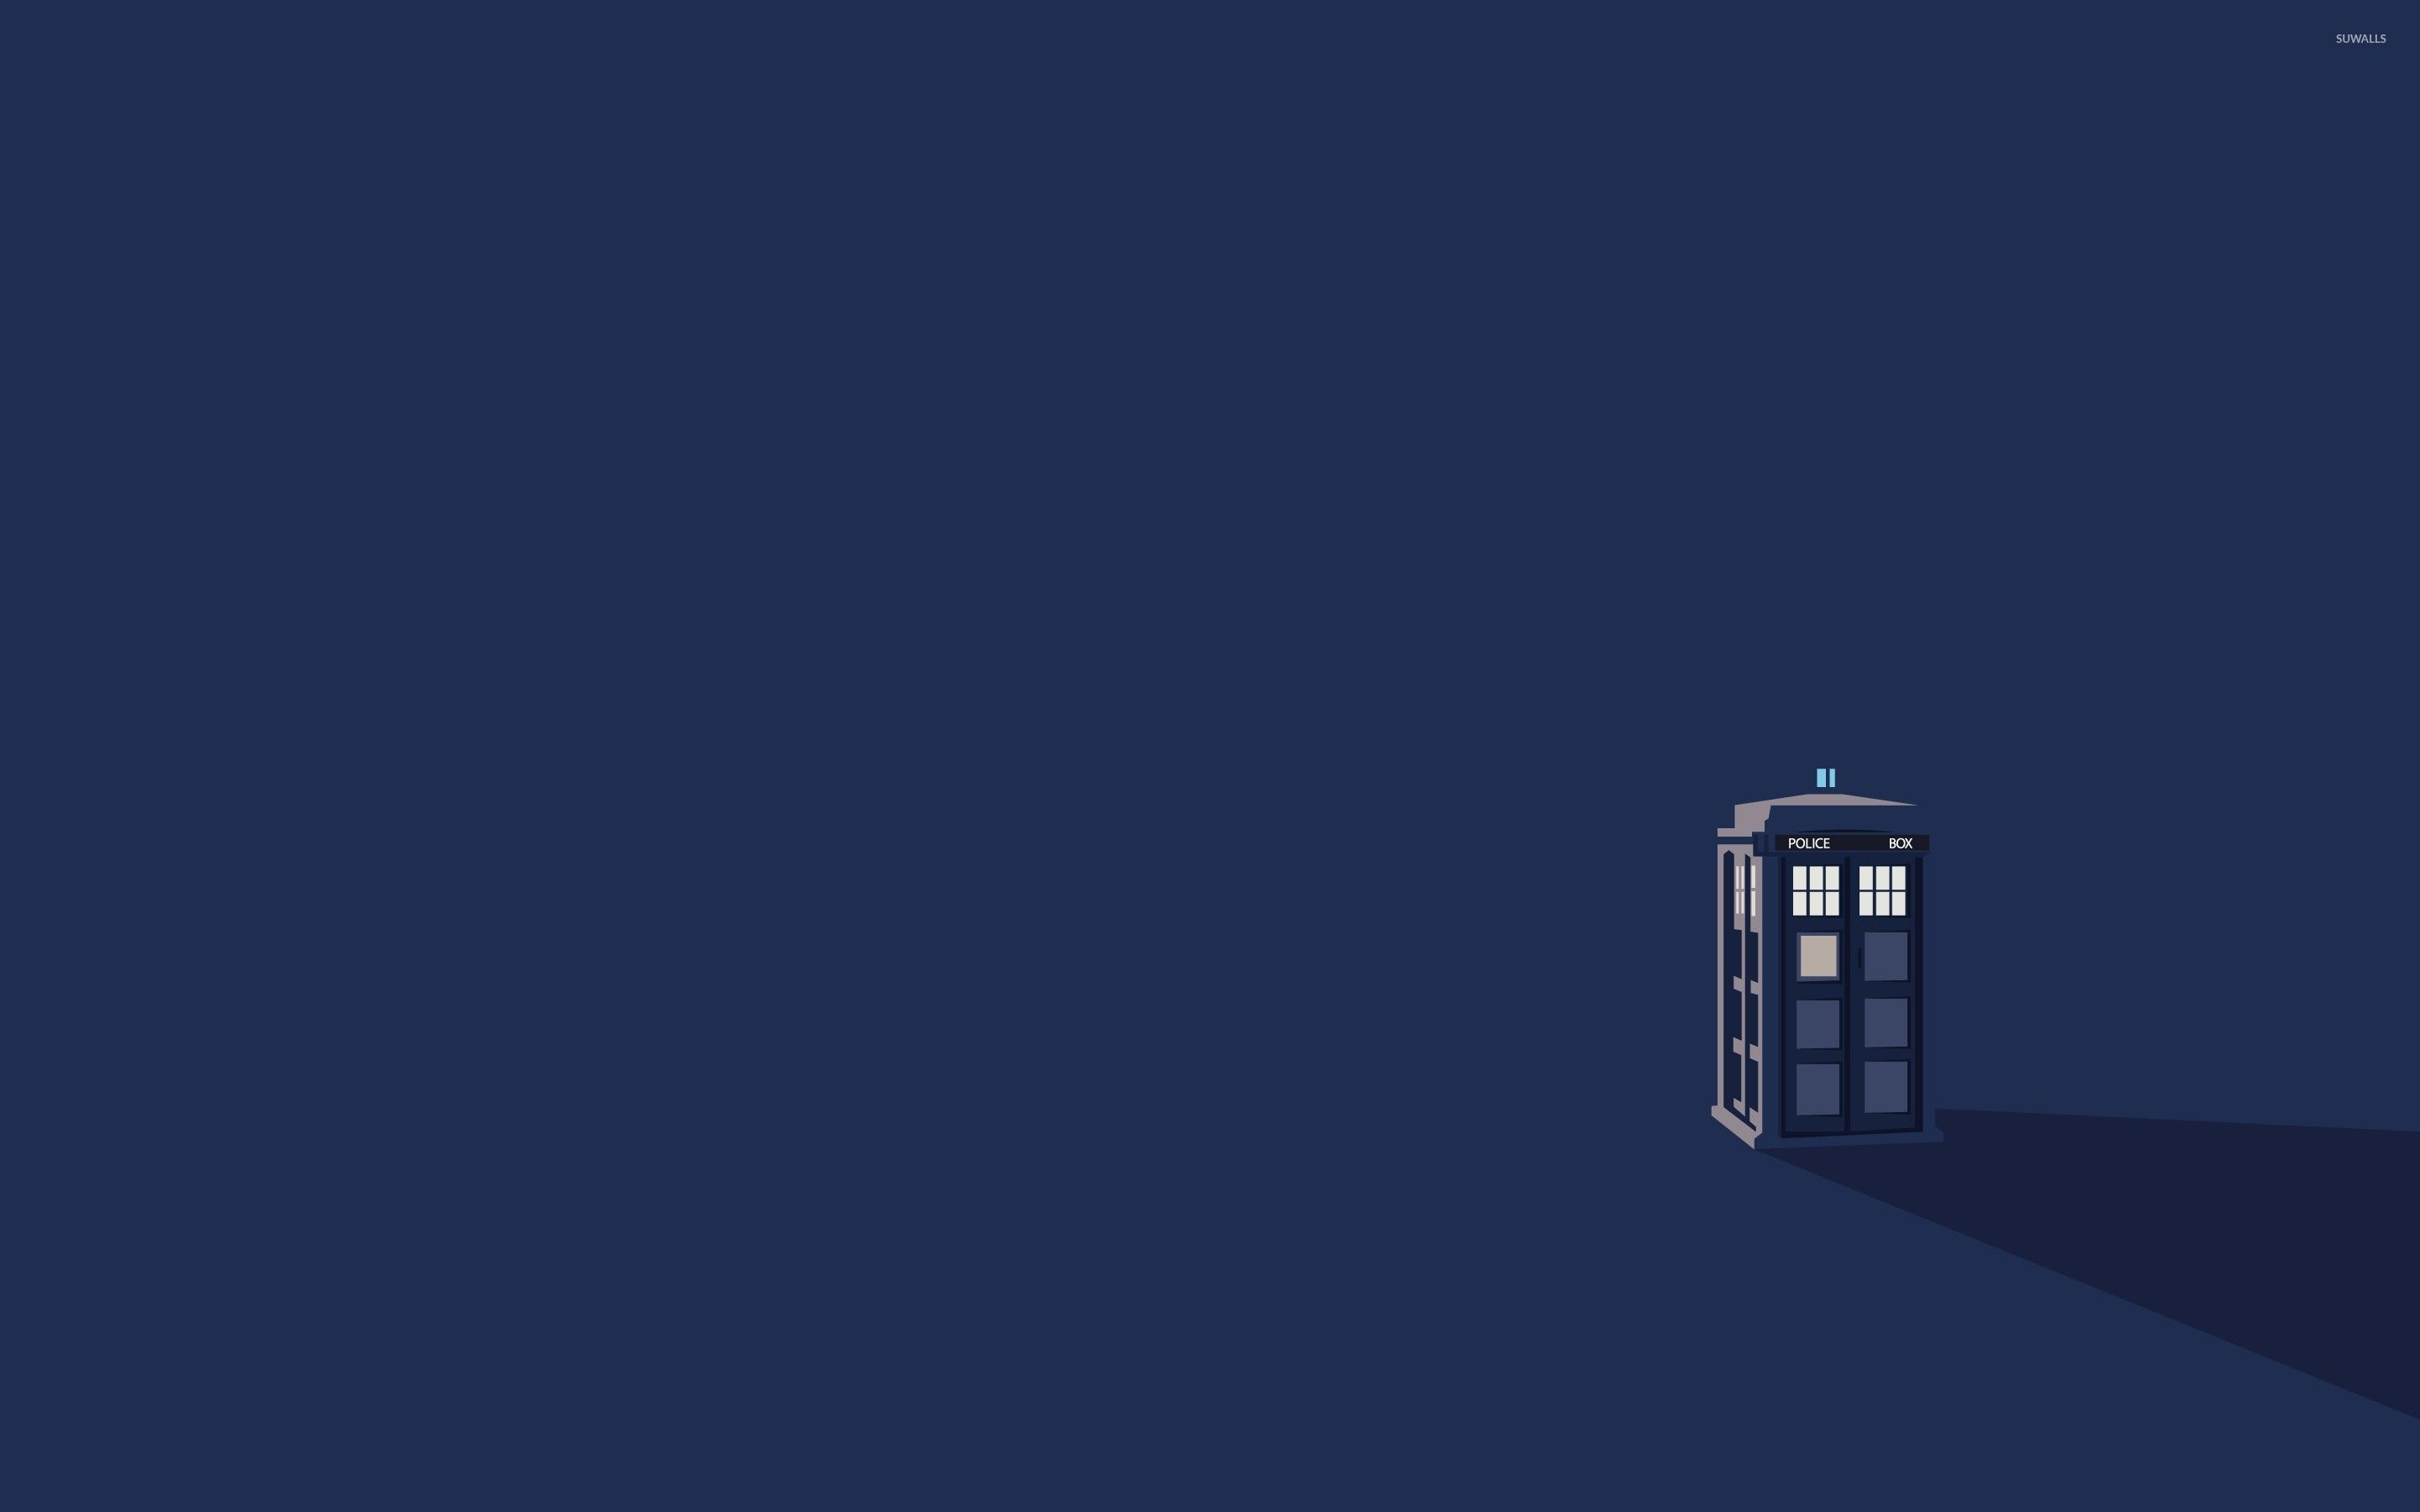 Doctor Who Wallpapers High Quality Resolution Cinematics